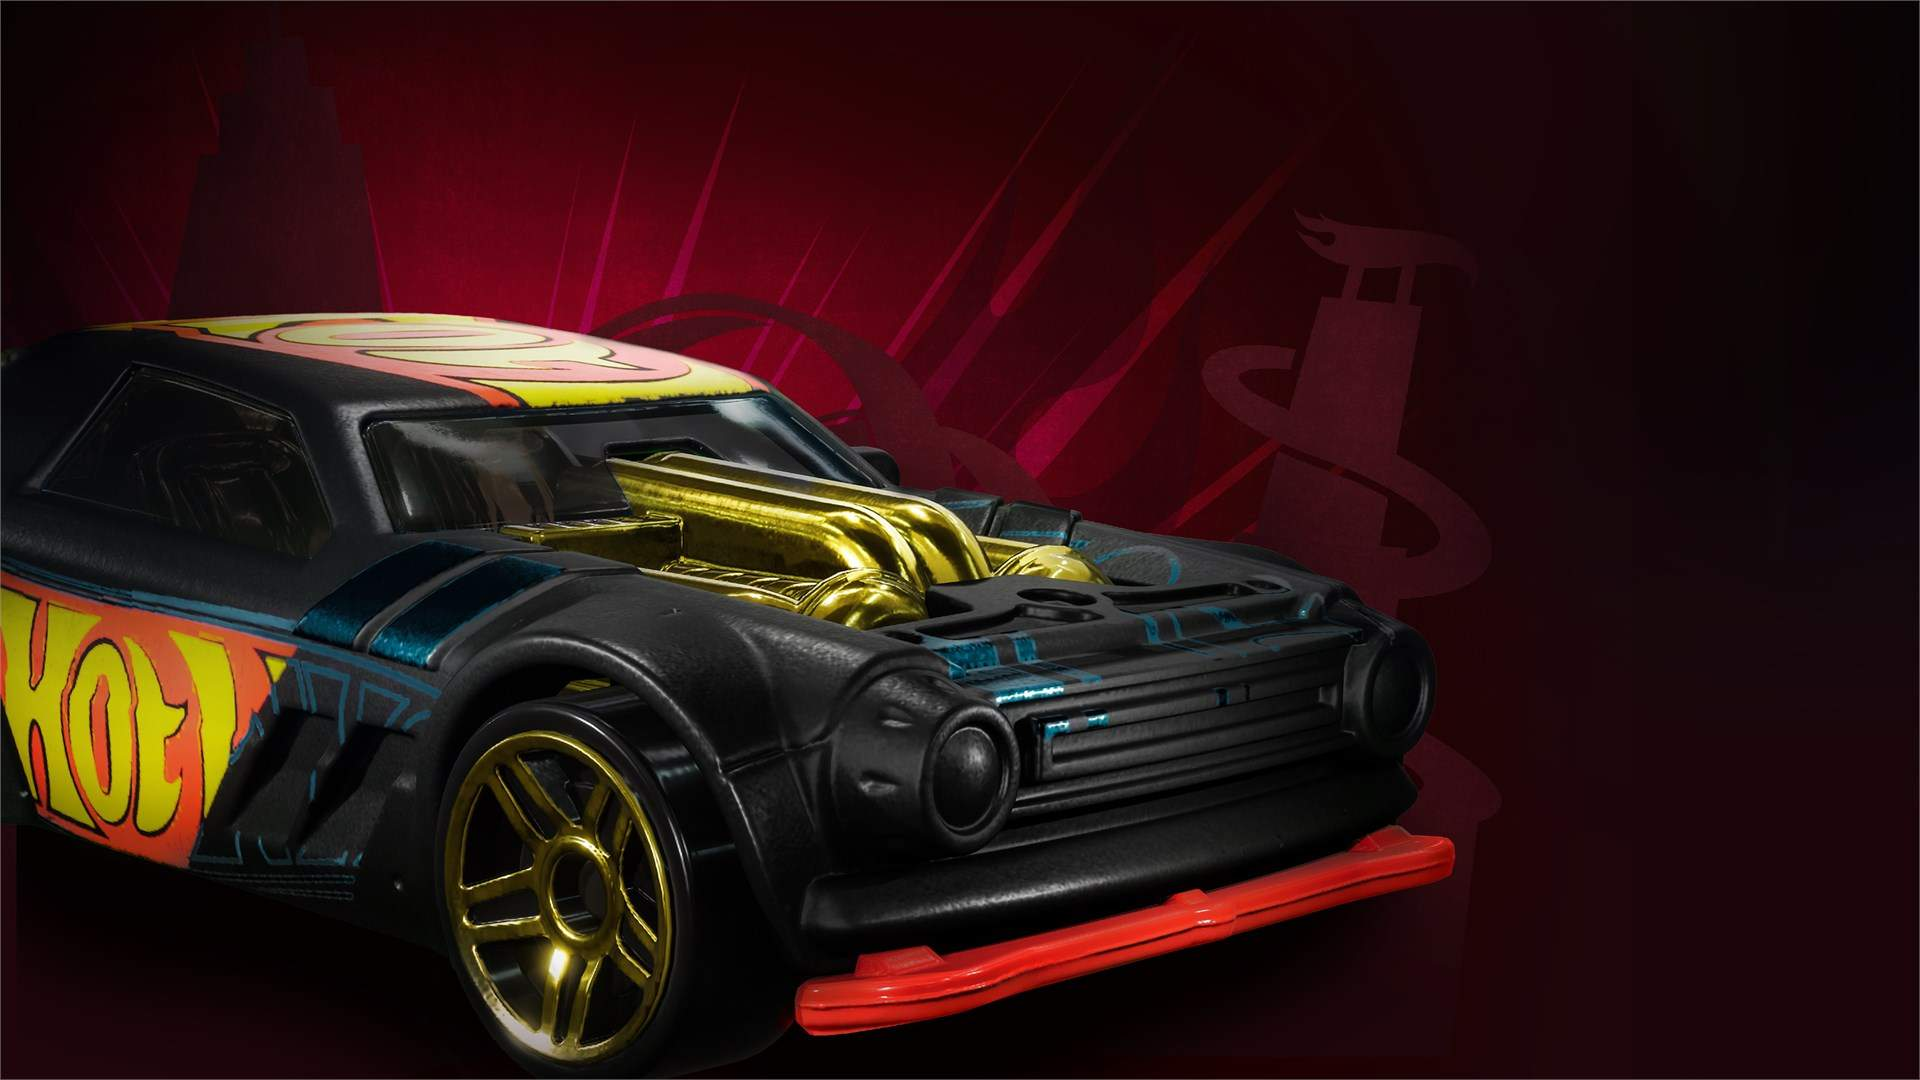 HOT WHEELS UNLEASHED Is Now Available For Xbox One And Xbox Series X|S 1